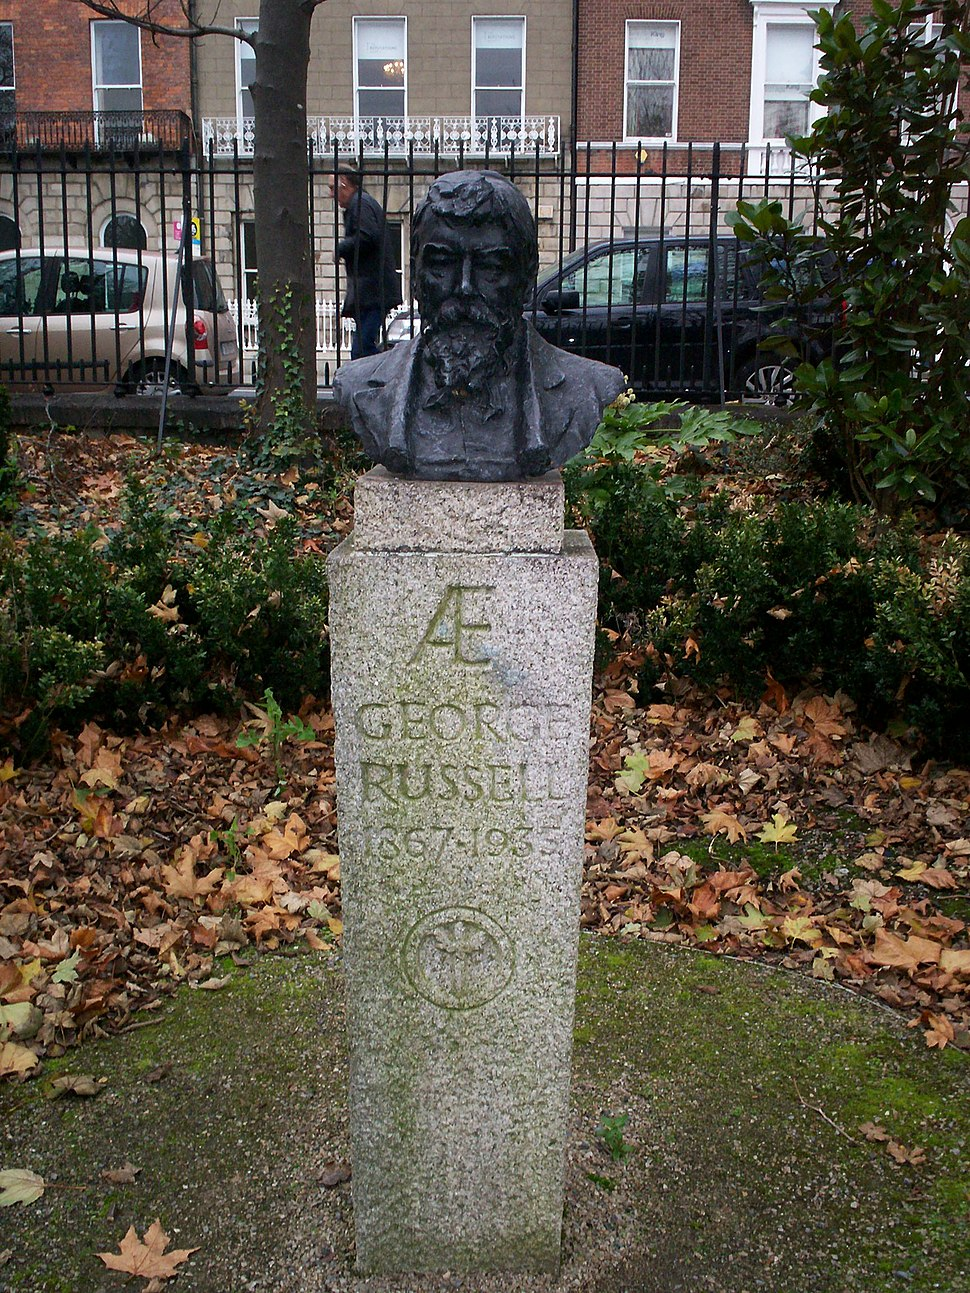 George Russell, Merrion Square 2